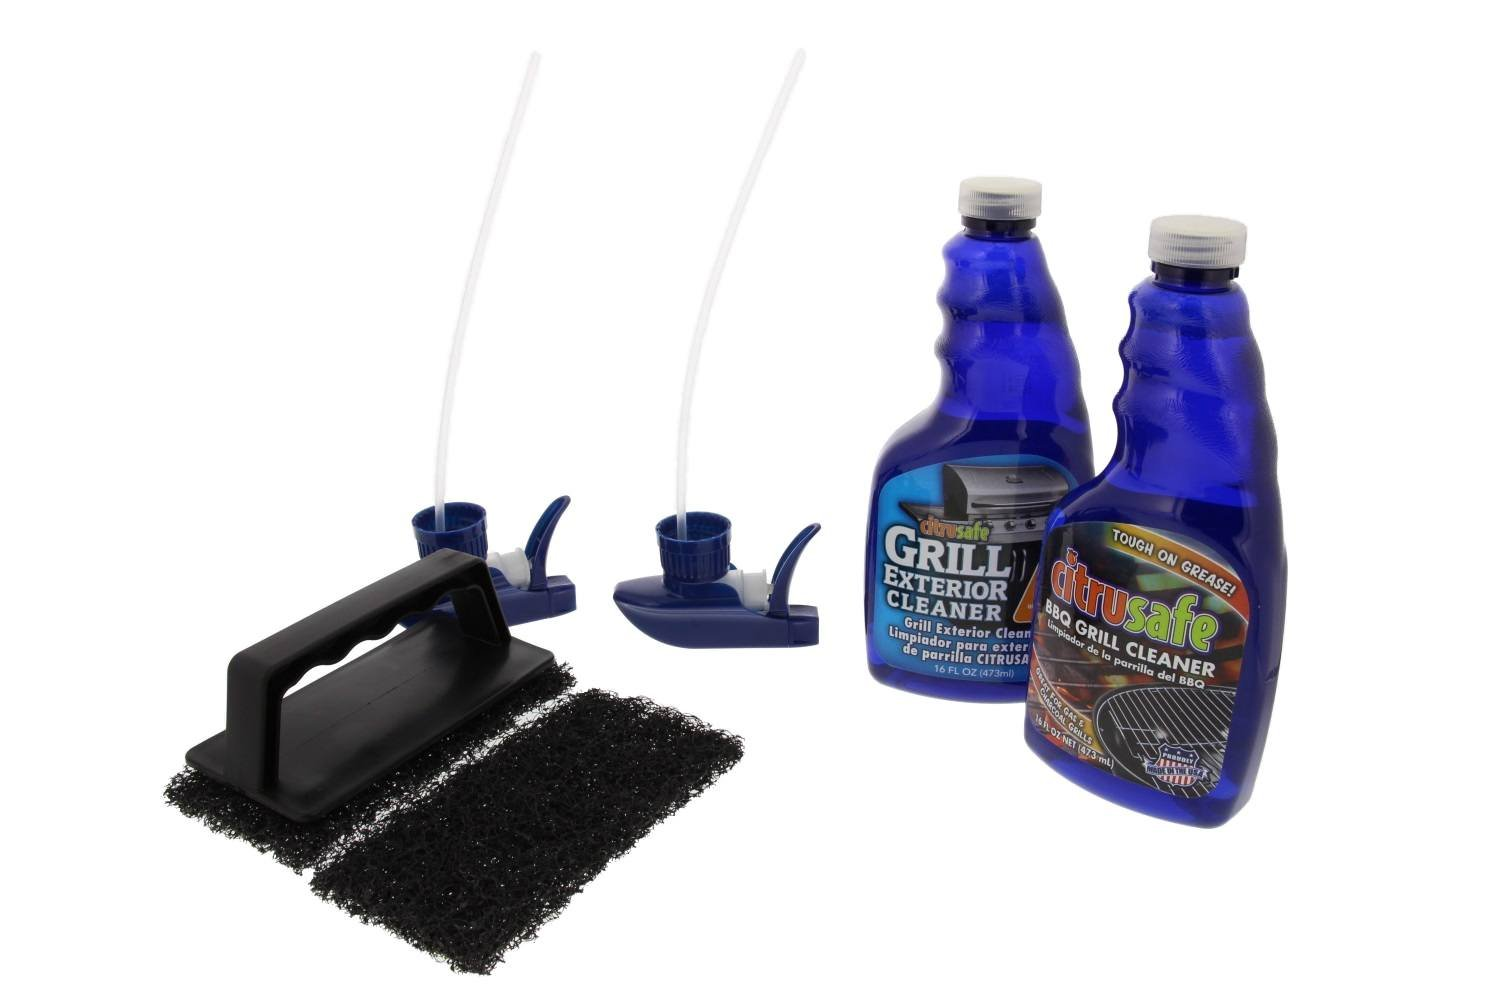 Grill Cleaning Kit - BBQ Grid And Grill Grate Cleanser, Exterior Cleaner, and Scrubber By Citrusafe (16 oz each) by Bryson Industries